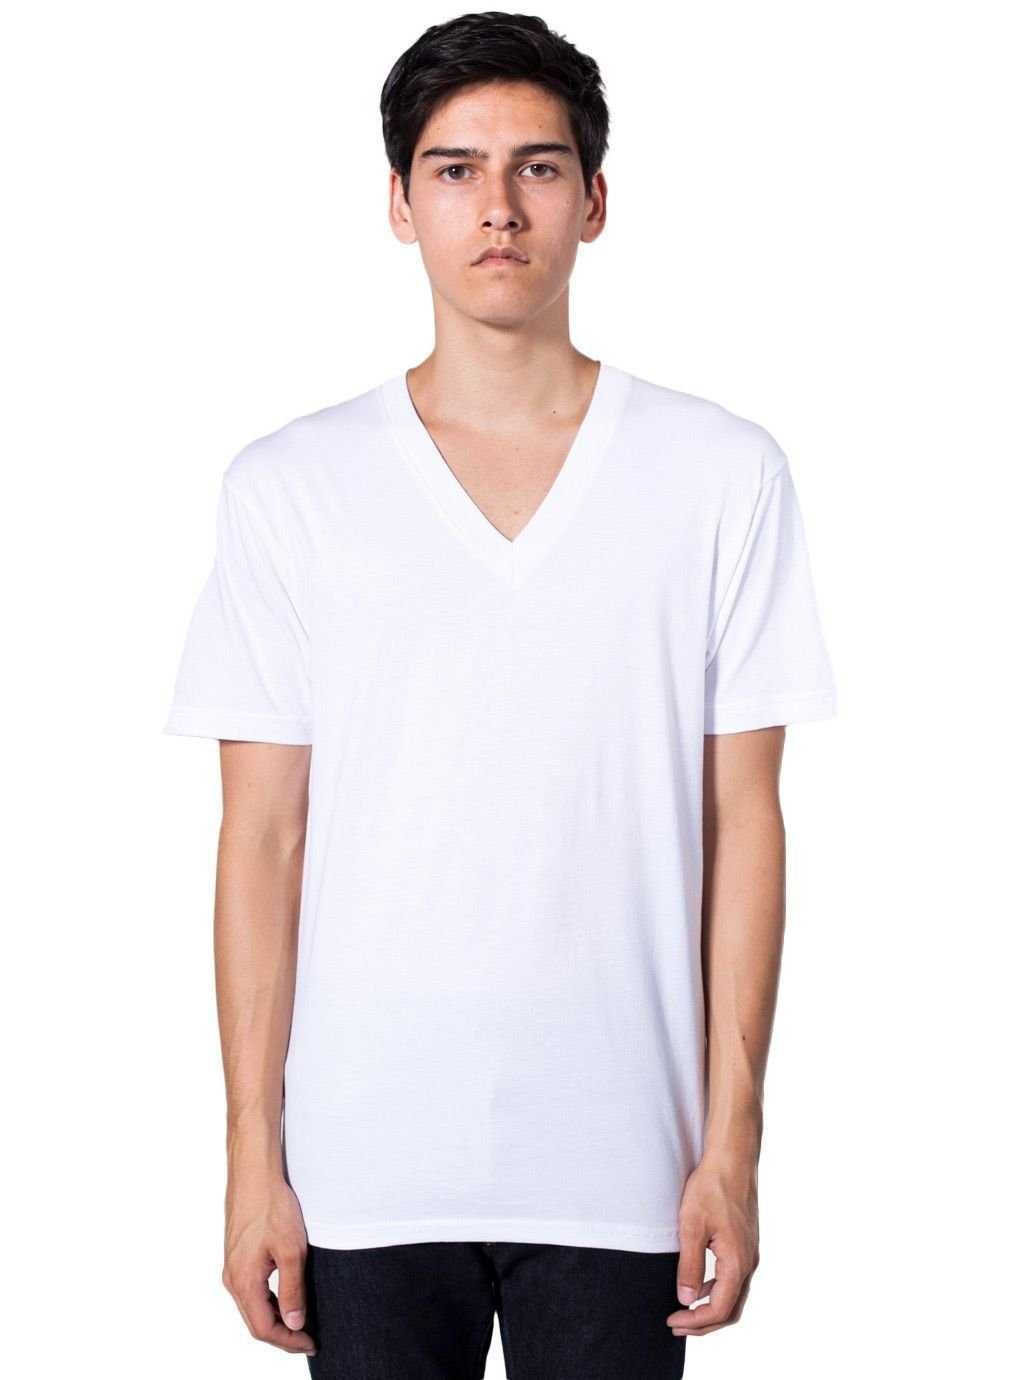 American Apparel Men's Organic Fine Jersey Short Sleeve V-Neck - White / M